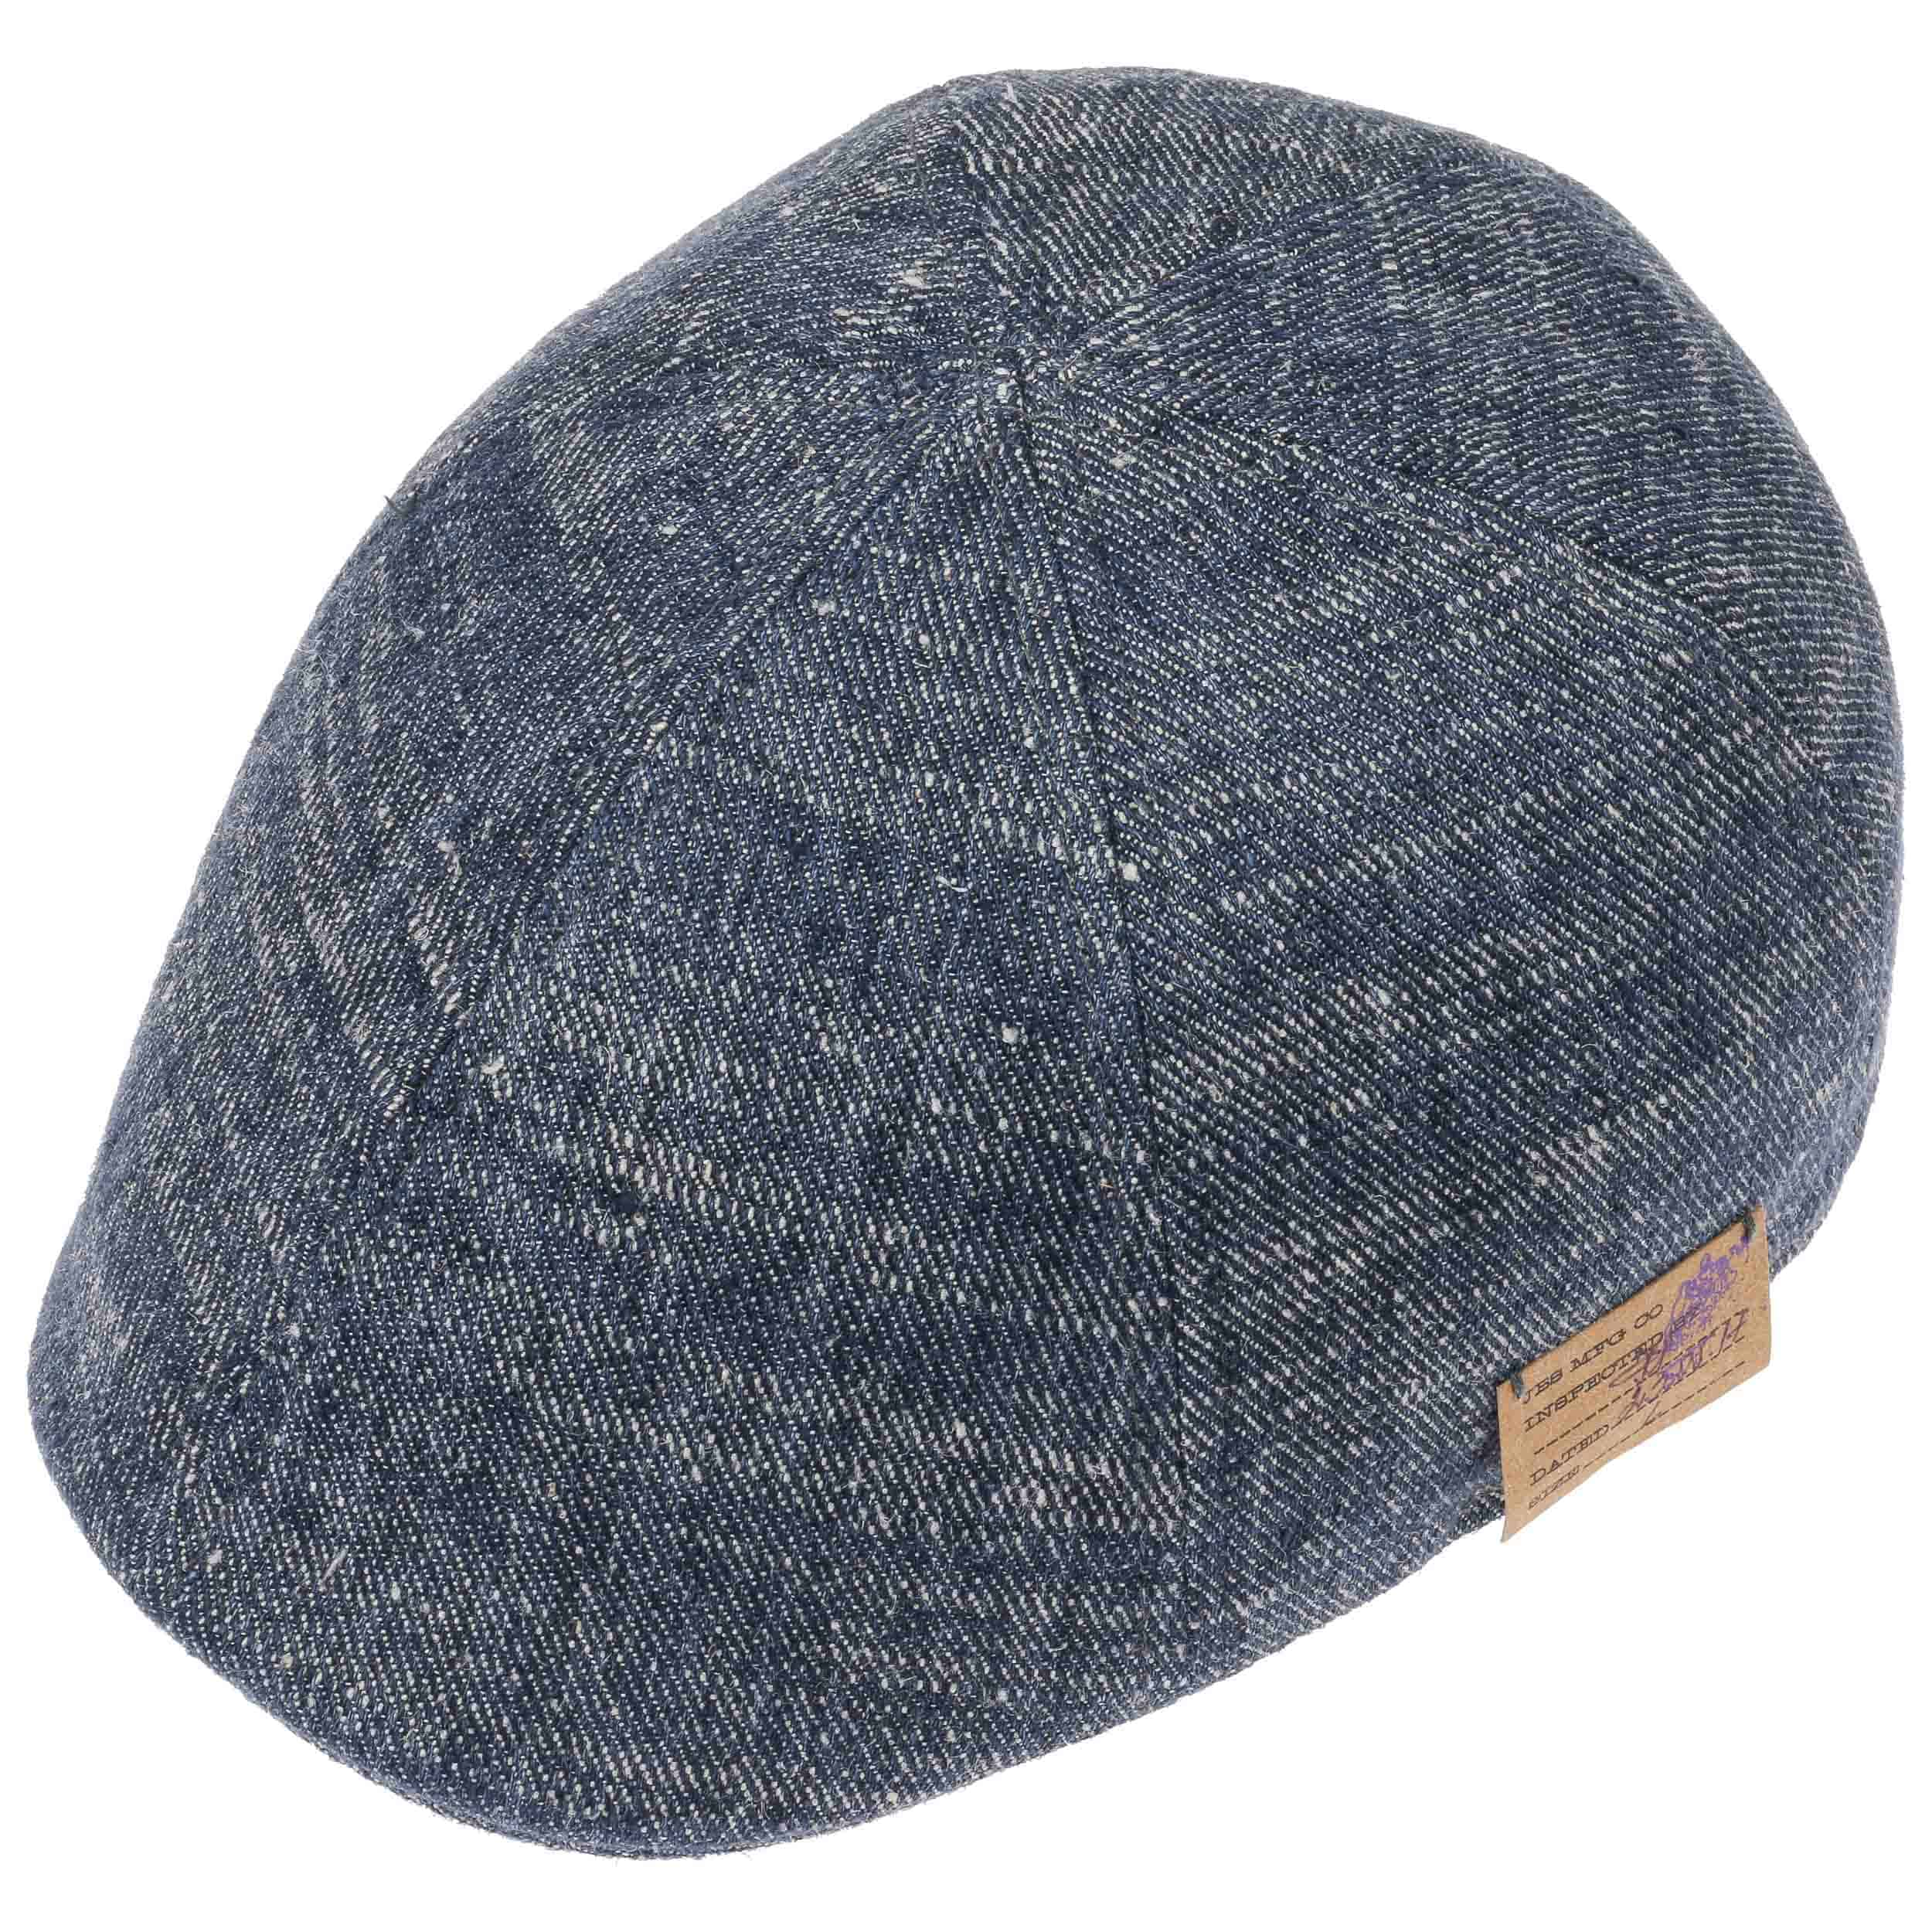 Texas Heritage Collection Flat Cap By Stetson 63 20